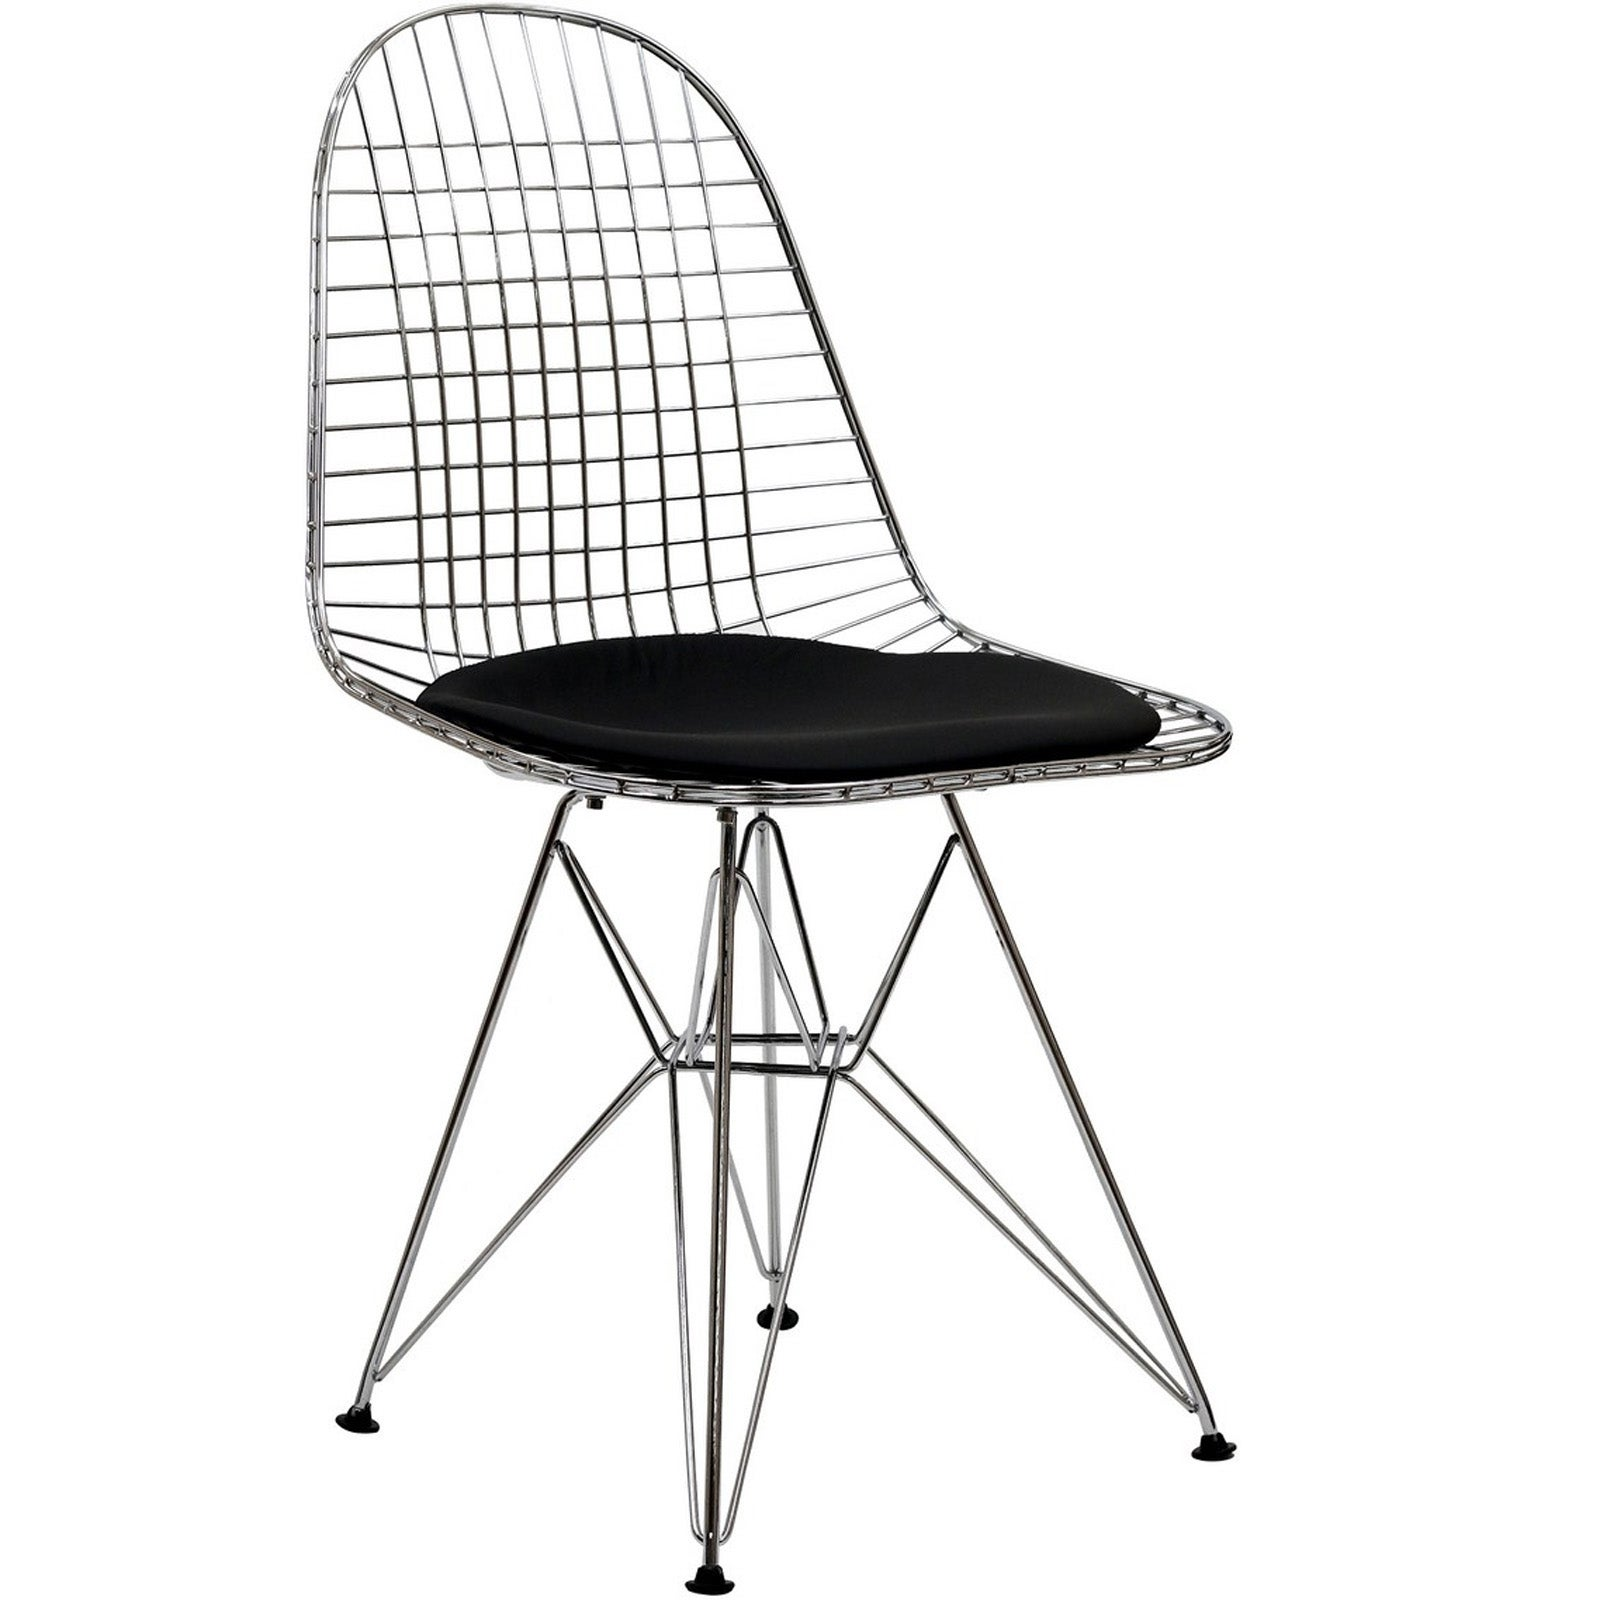 Wire Tower Black Vinyl Cushion Dining Chair Free  : Wire Tower Black Vinyl Cushion Side Chair L14230561 from www.overstock.com size 1600 x 1600 jpeg 76kB